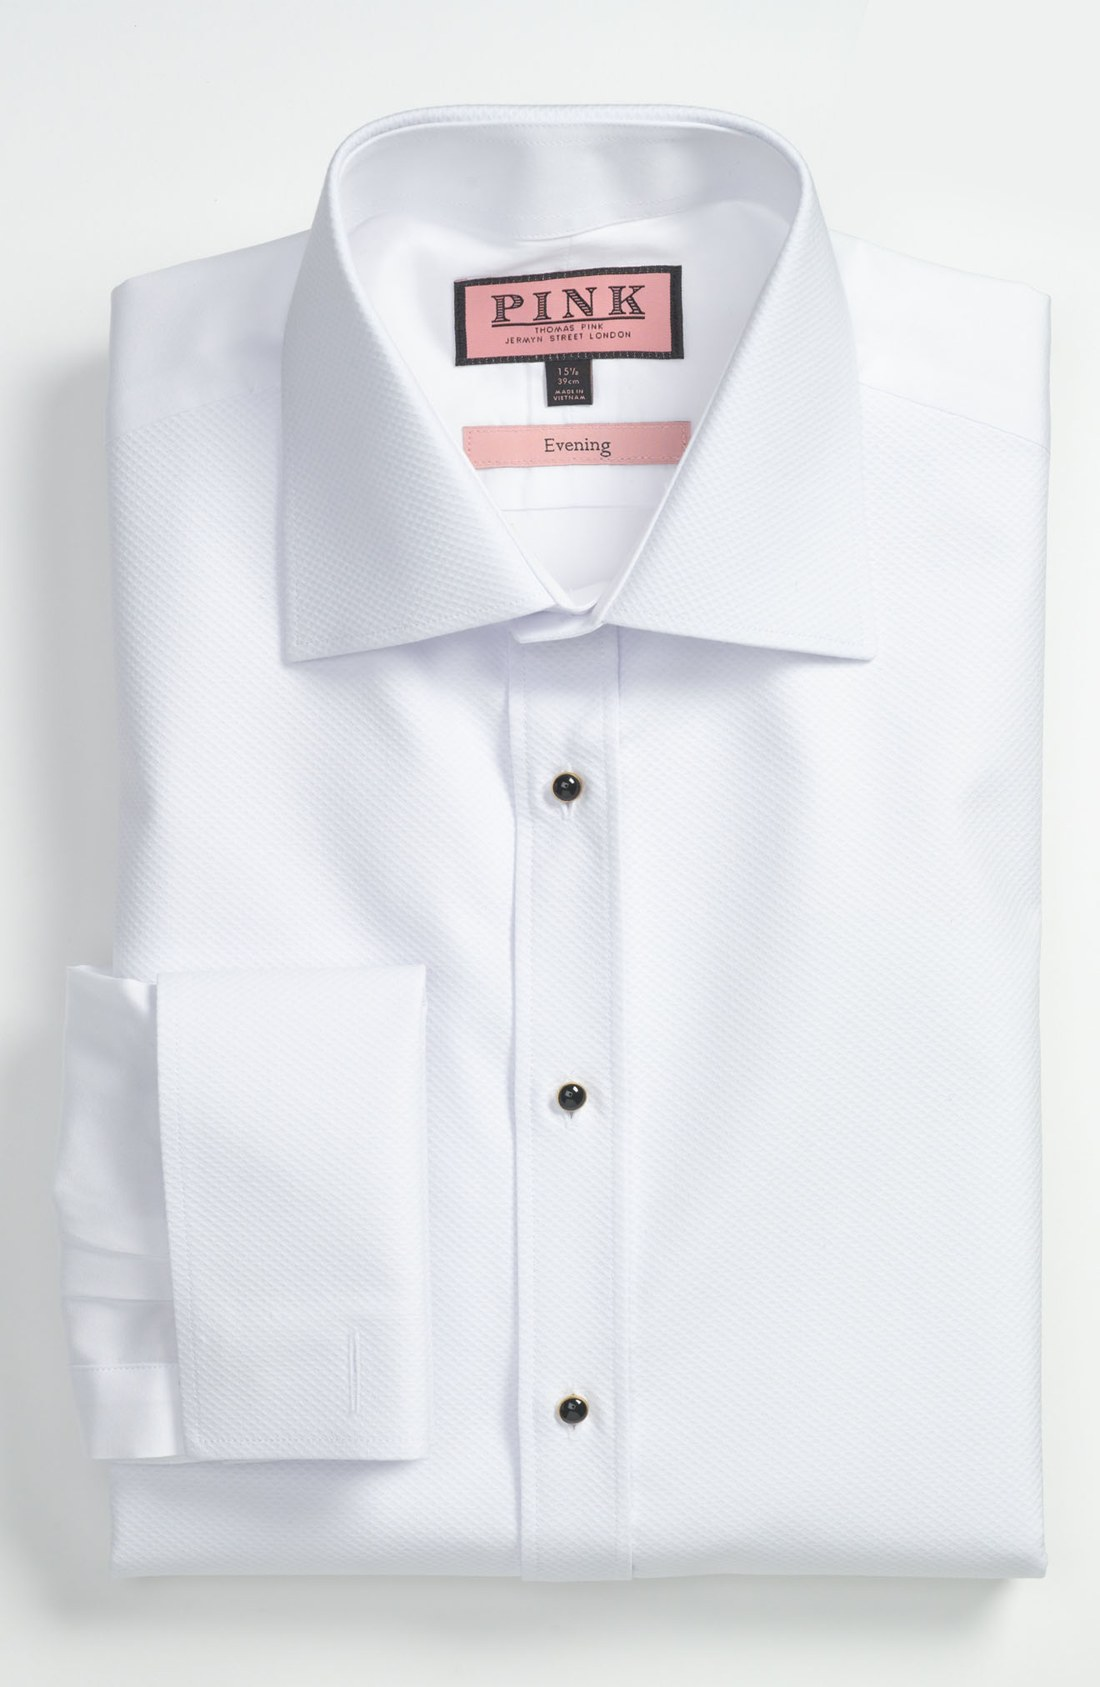 Thomas Pink Slim Fit Tuxedo Shirt In White For Men Lyst